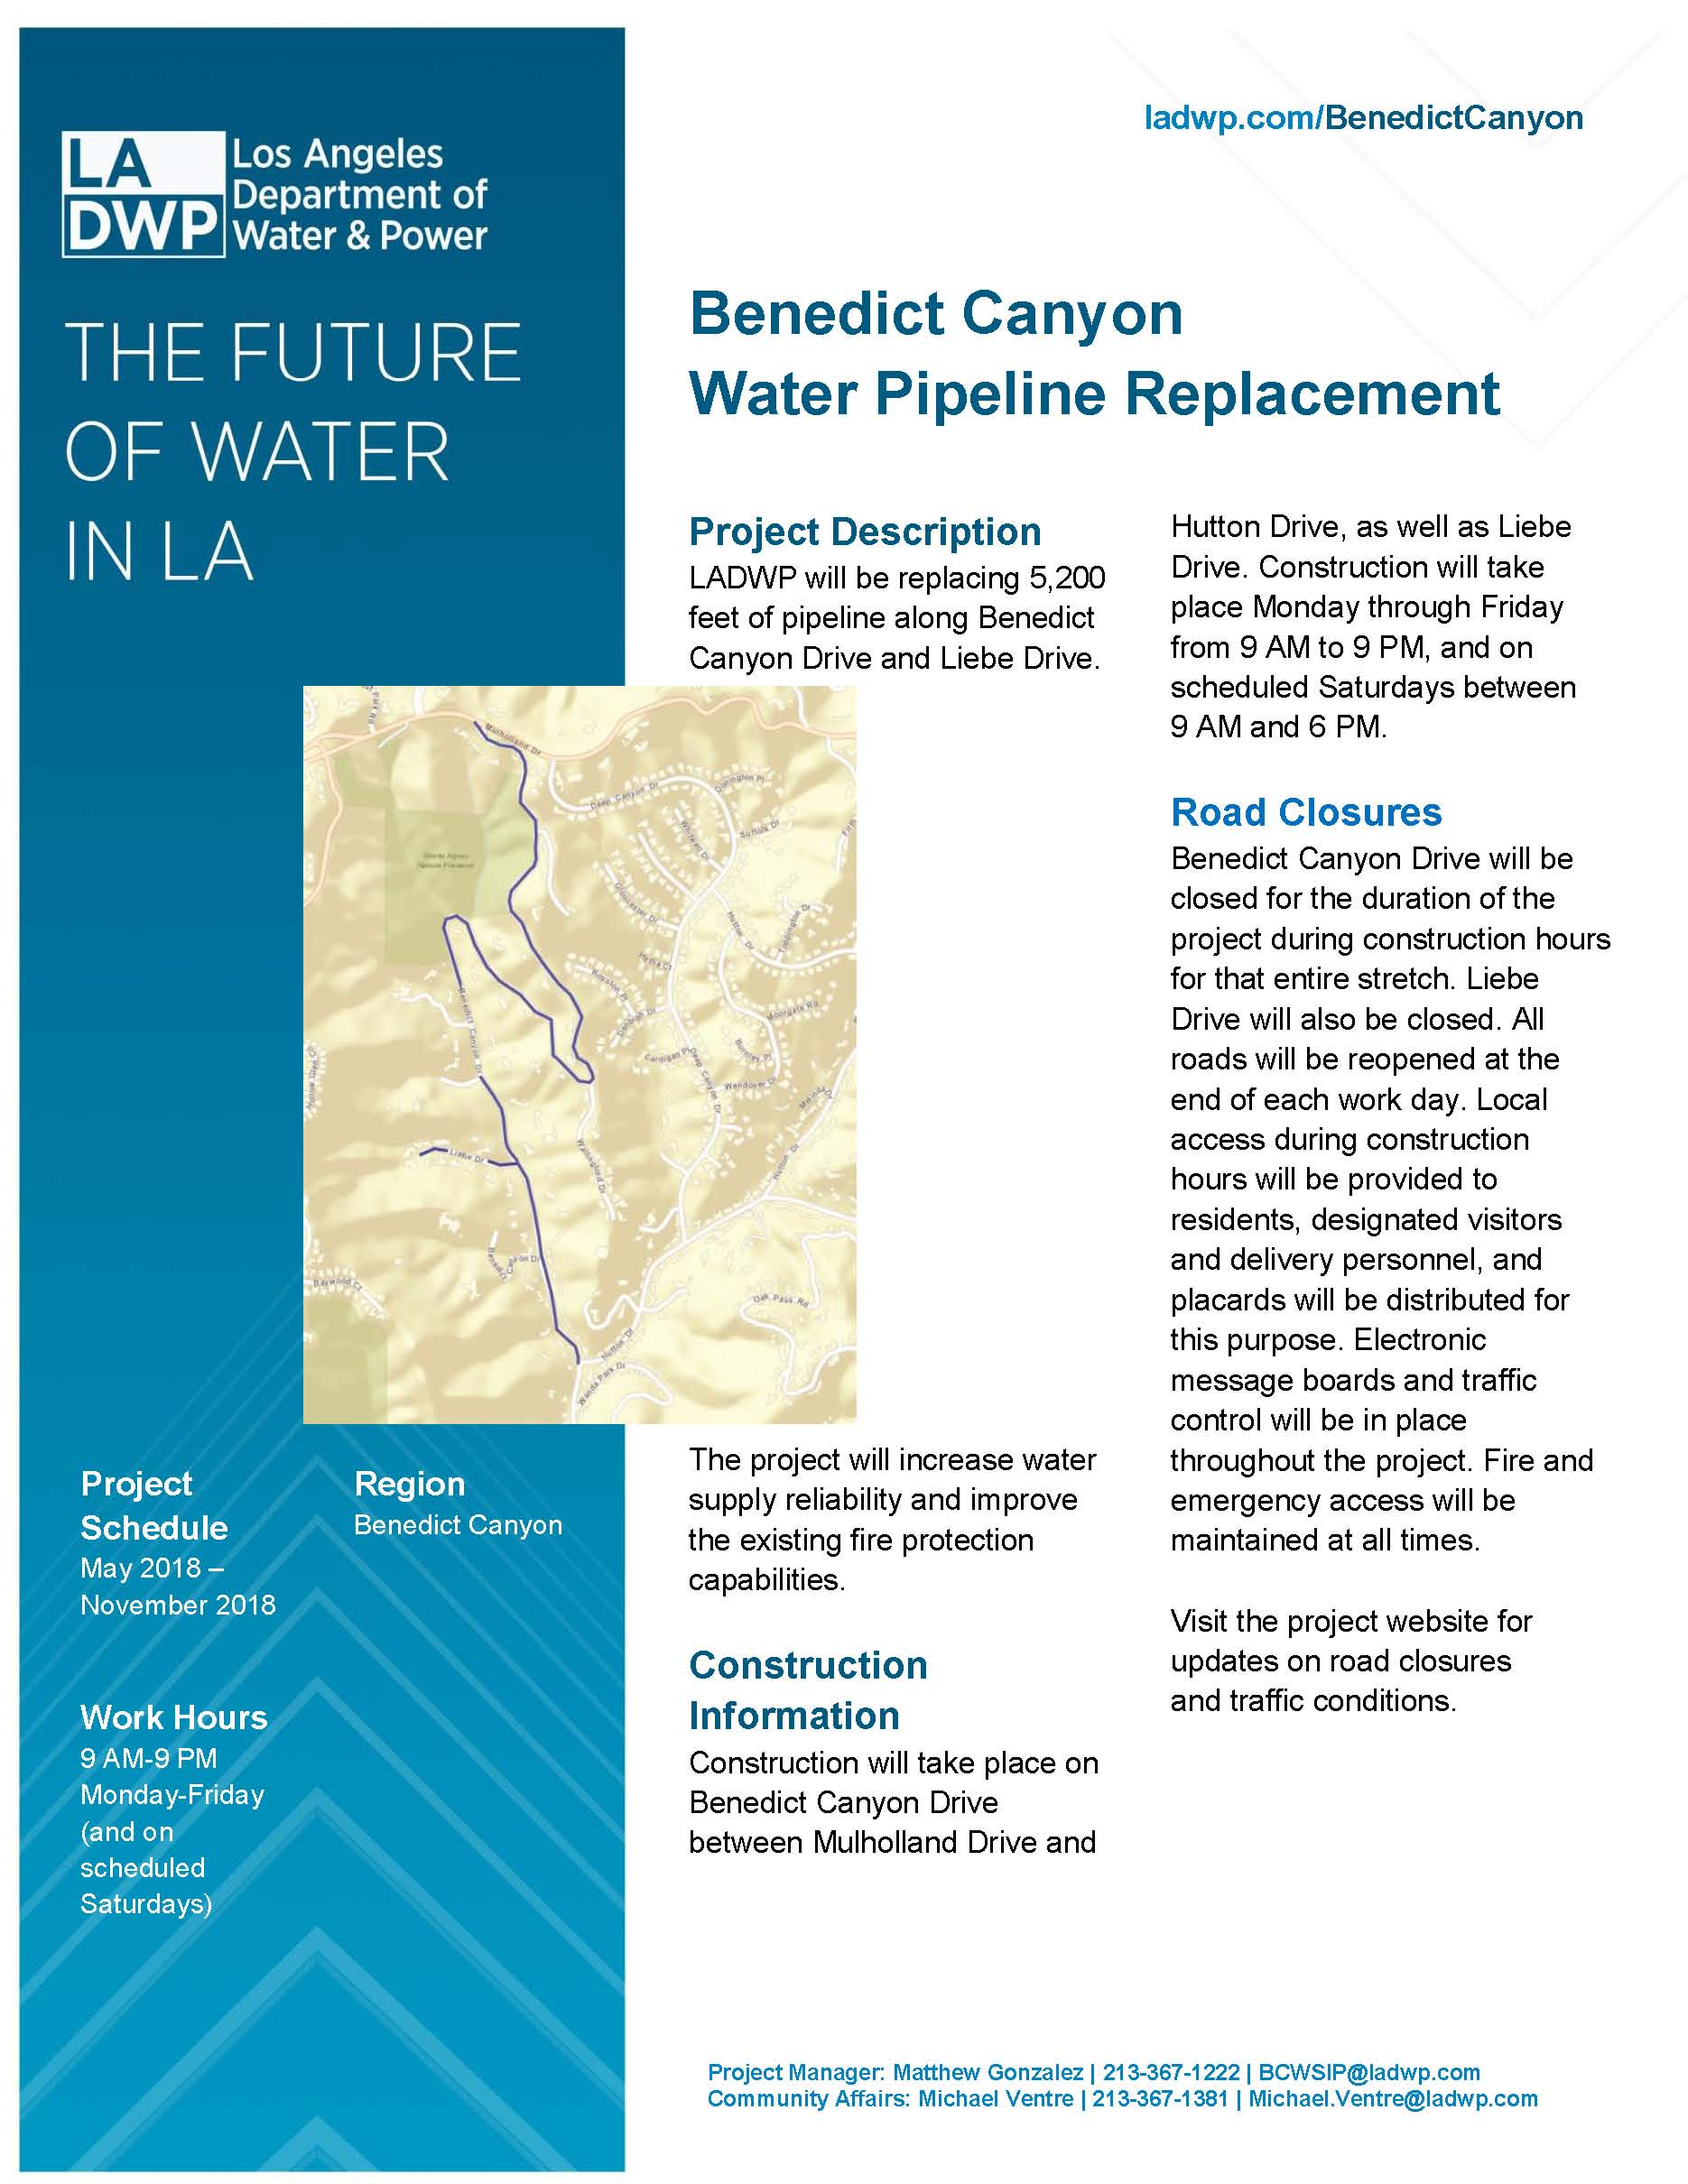 BENEDICT CANYON FACT SHEET (3-28-18) copy.jpg